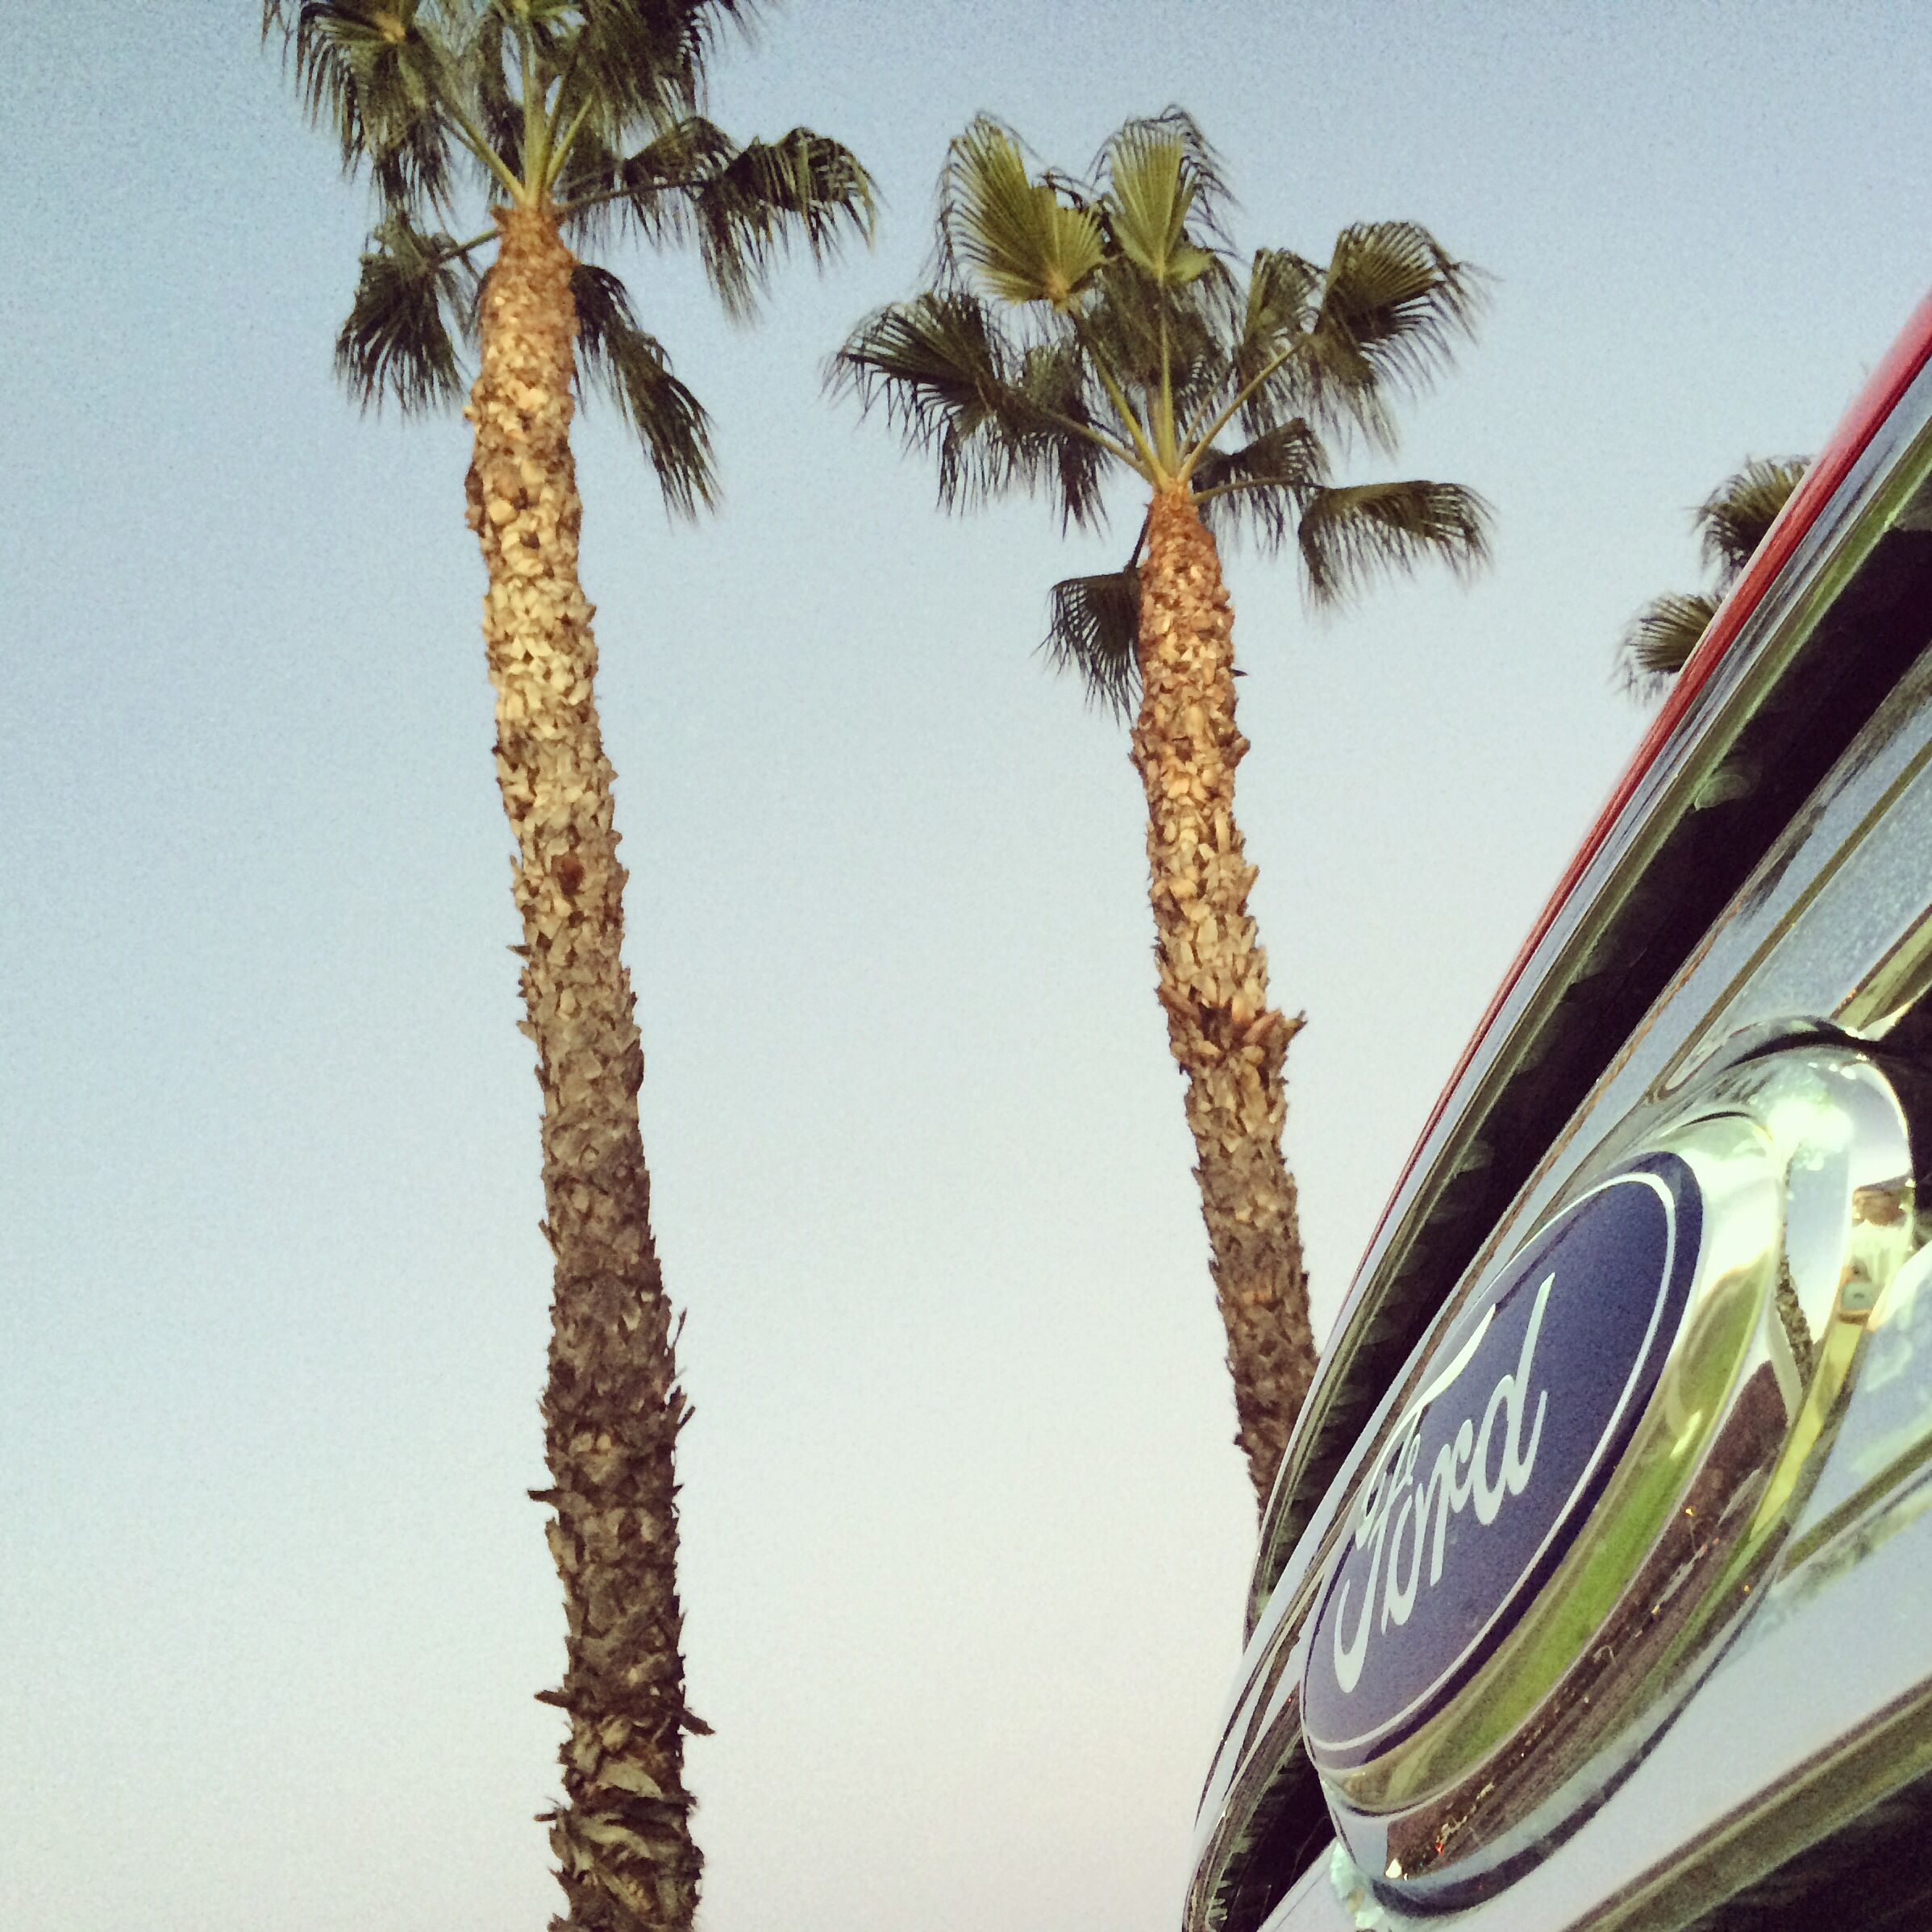 Blue skies, Blue Ovals and palm trees....